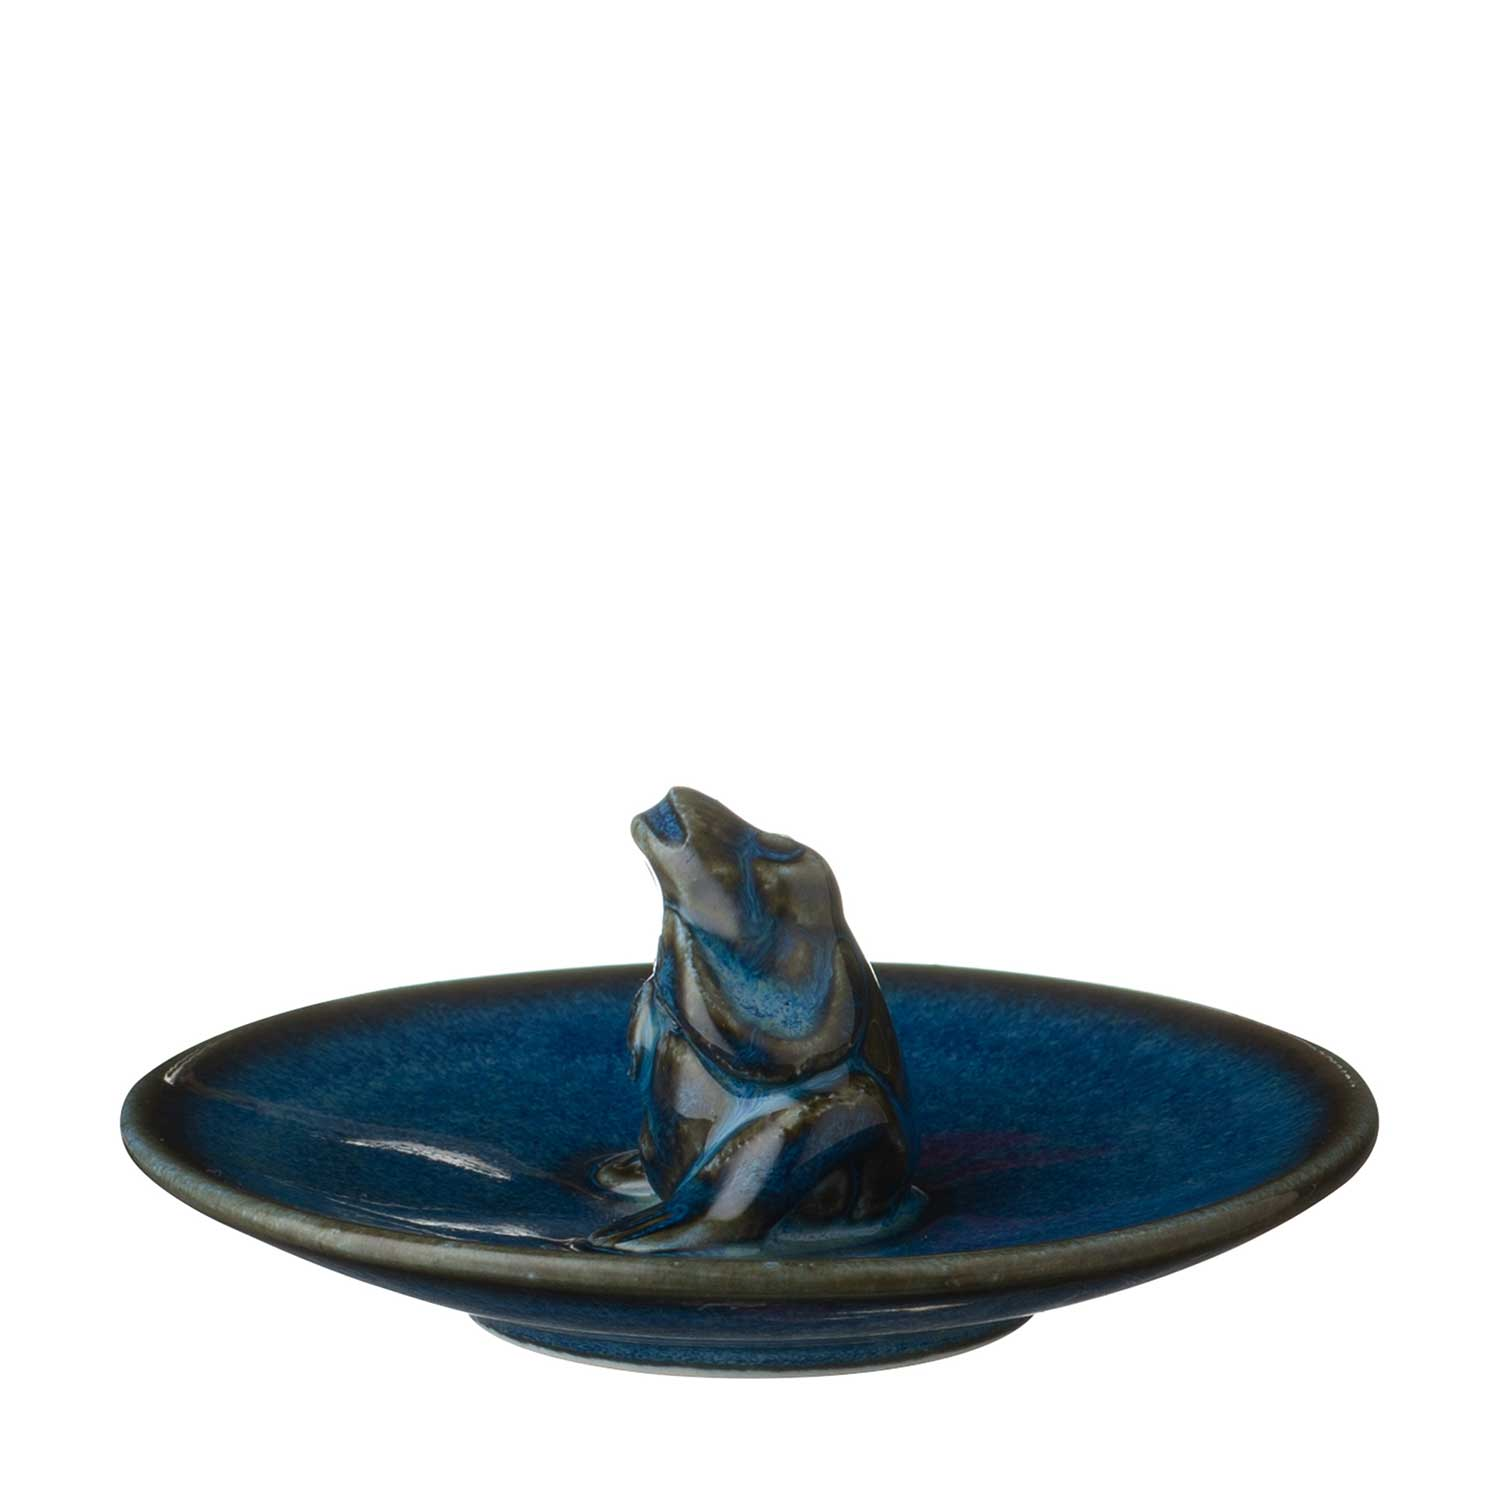 Lid For Cup With Frog